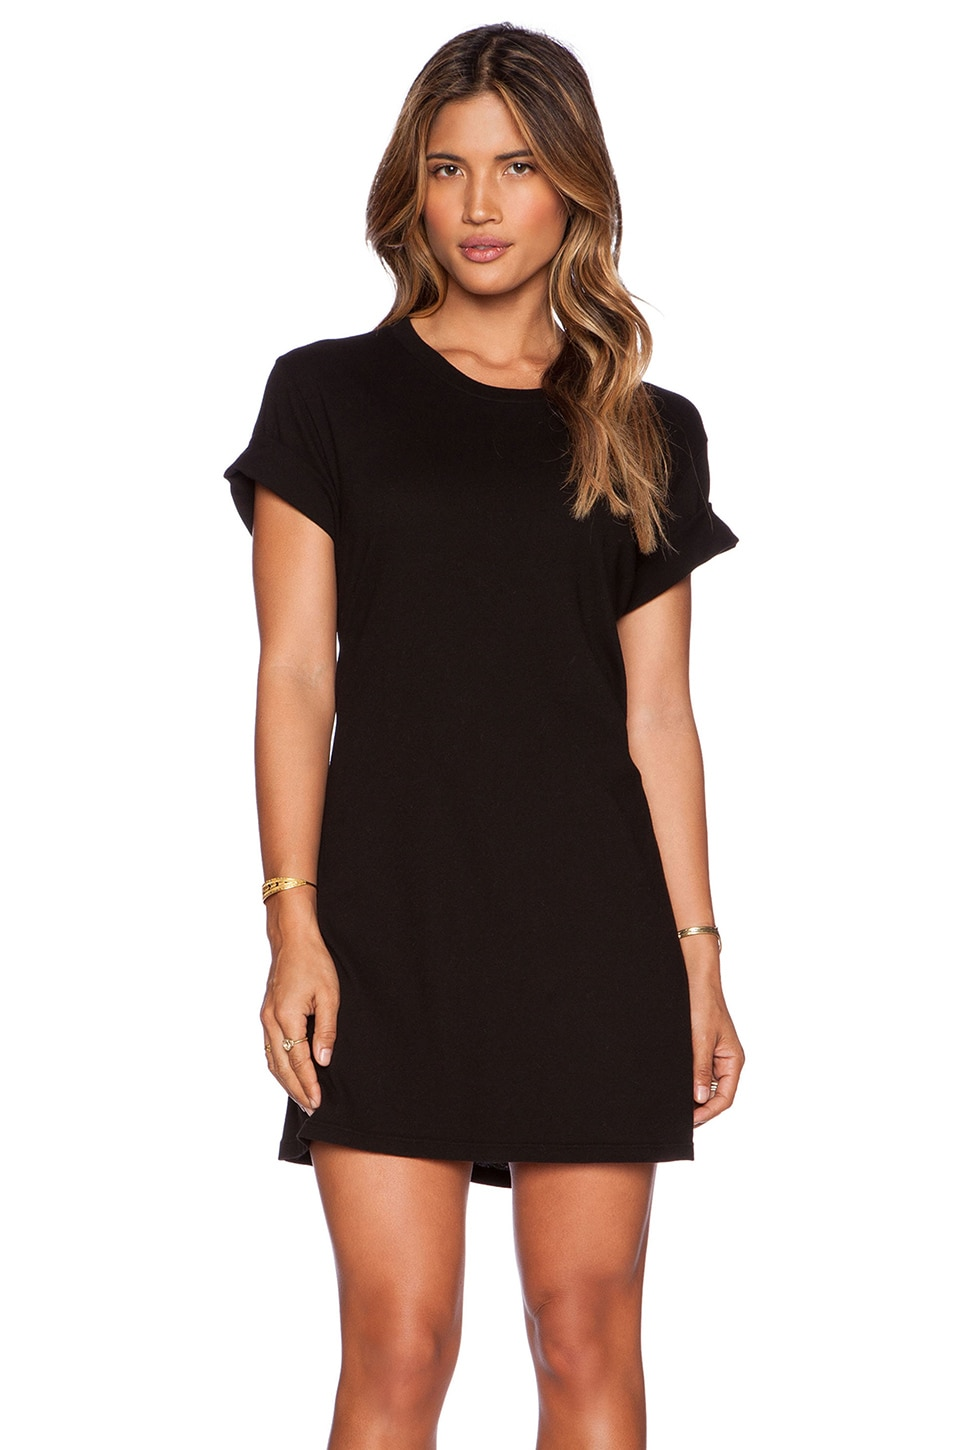 Old Navy has a collection of t-shirt dress that provides a stylish look and a comfortable fit. Choose from knit dresses in a wide selection of fabulous styles and colors.